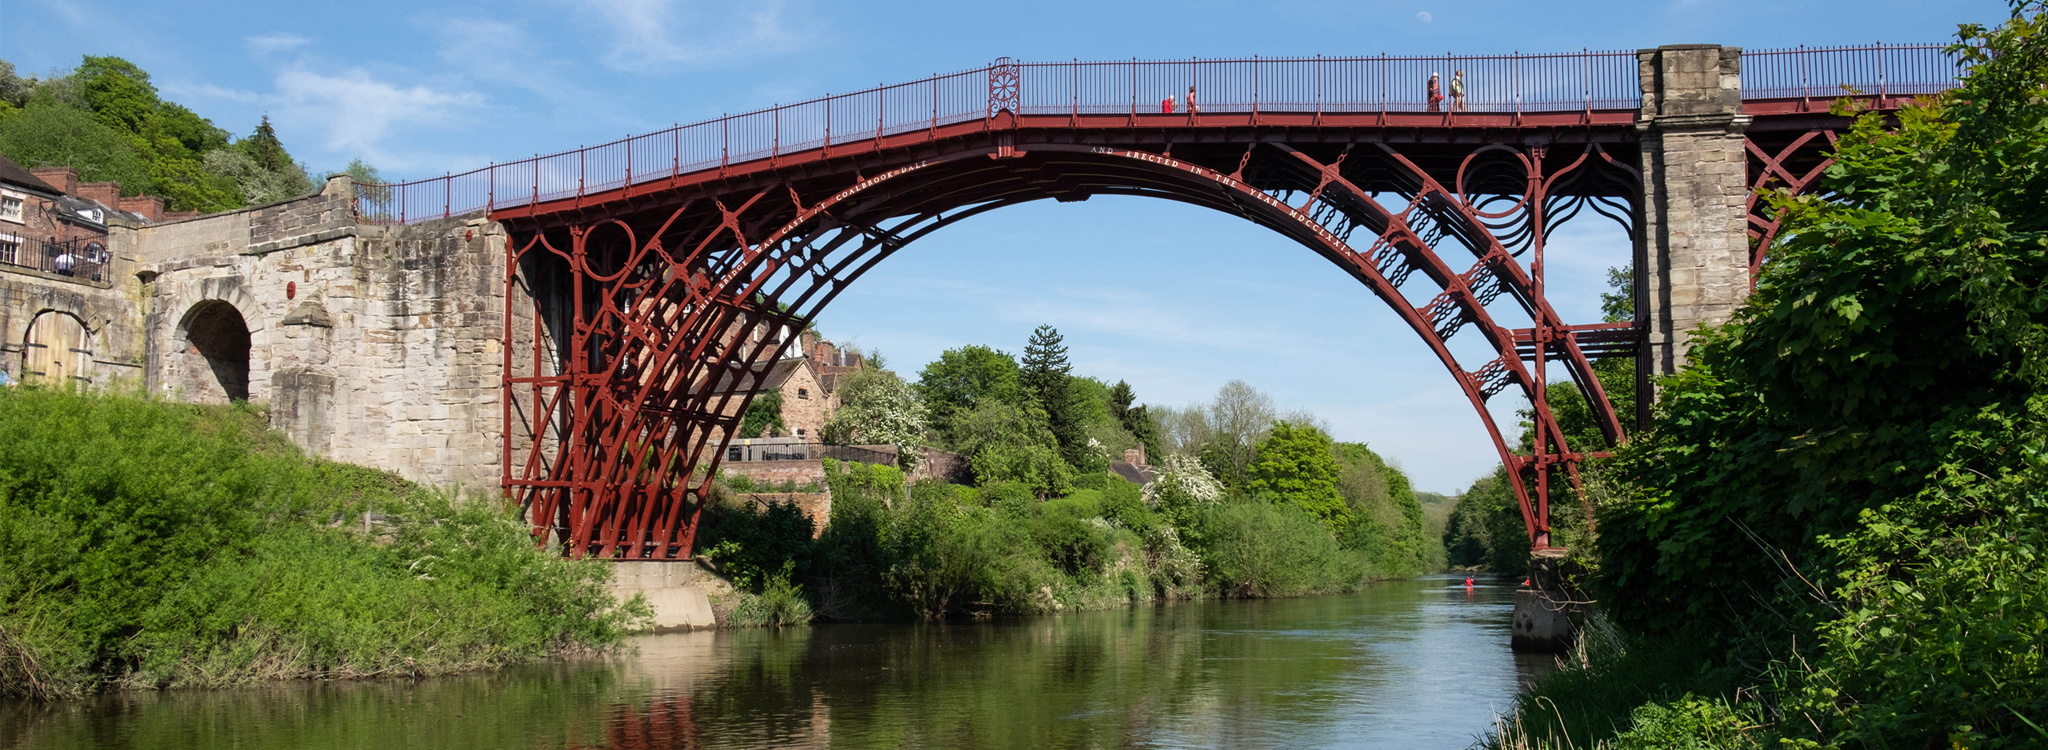 A view of the Iron Bridge from the River Severn.